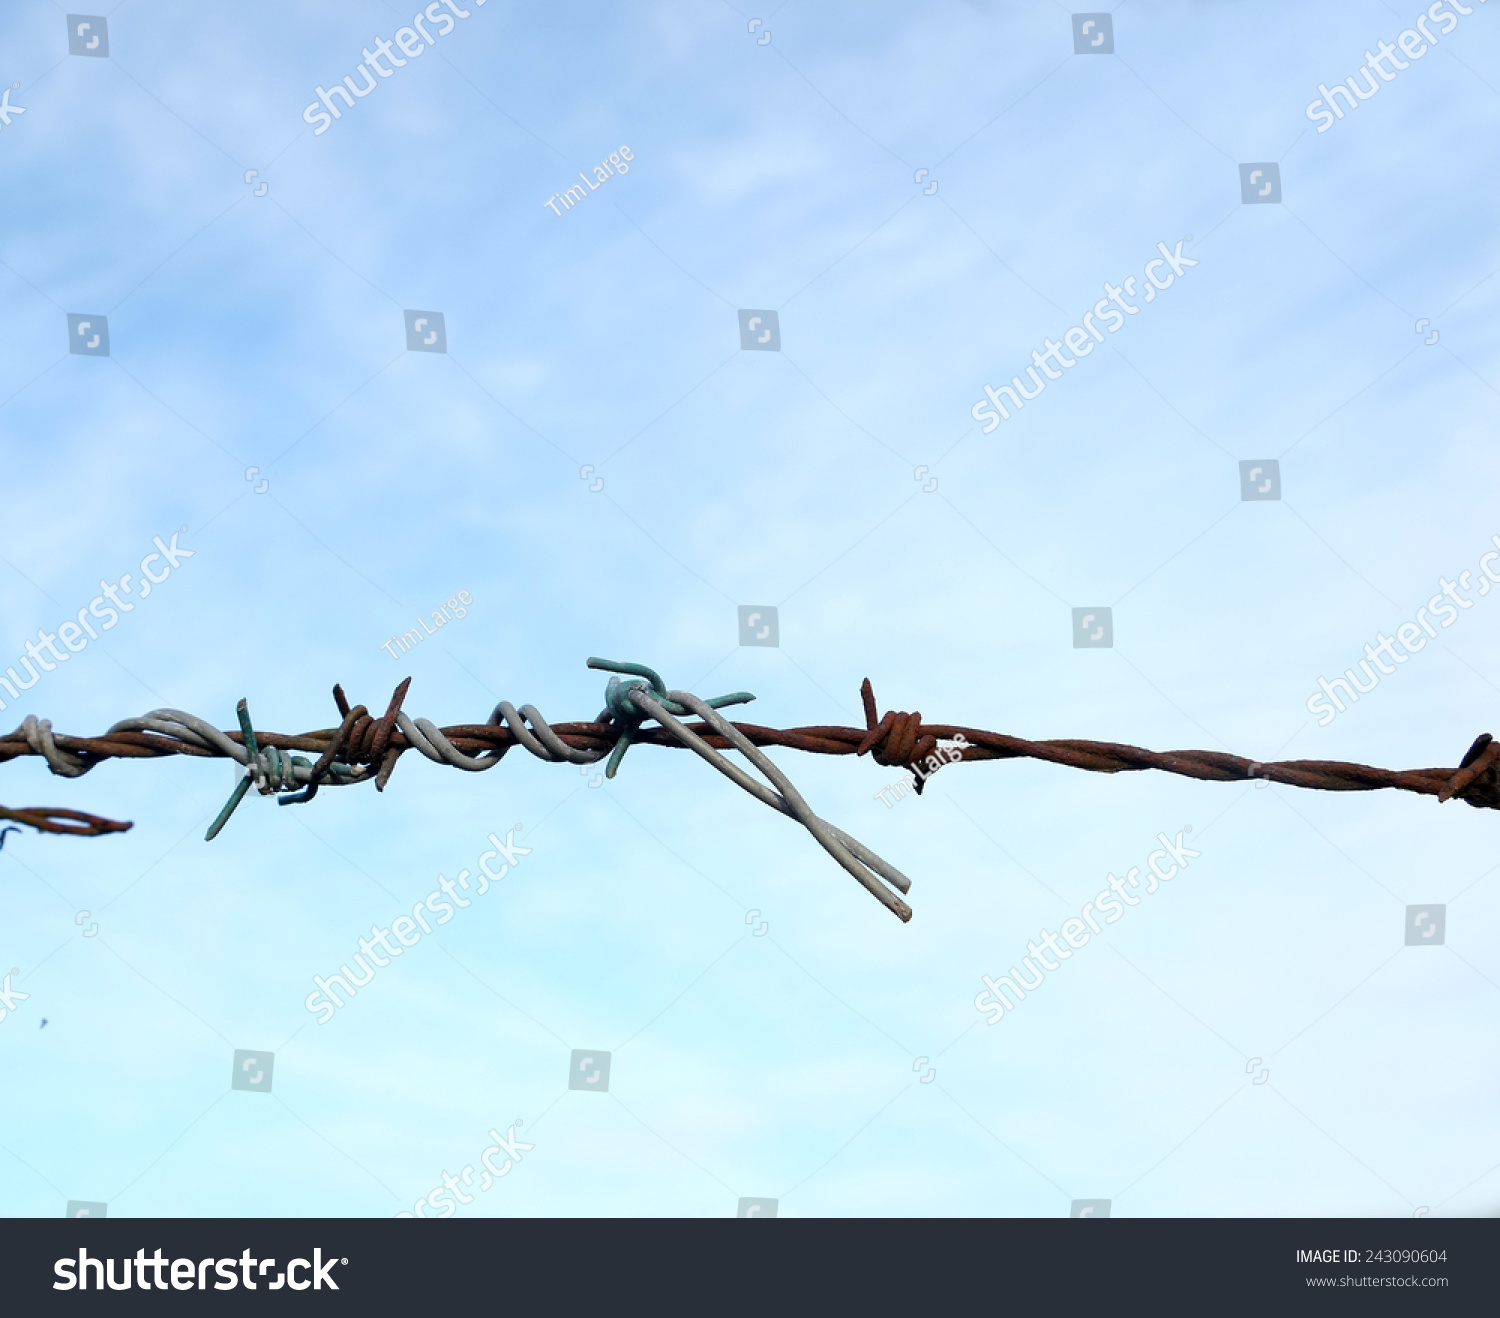 Old New Barbed Wire Fence Twisted Stock Photo (Royalty Free ...